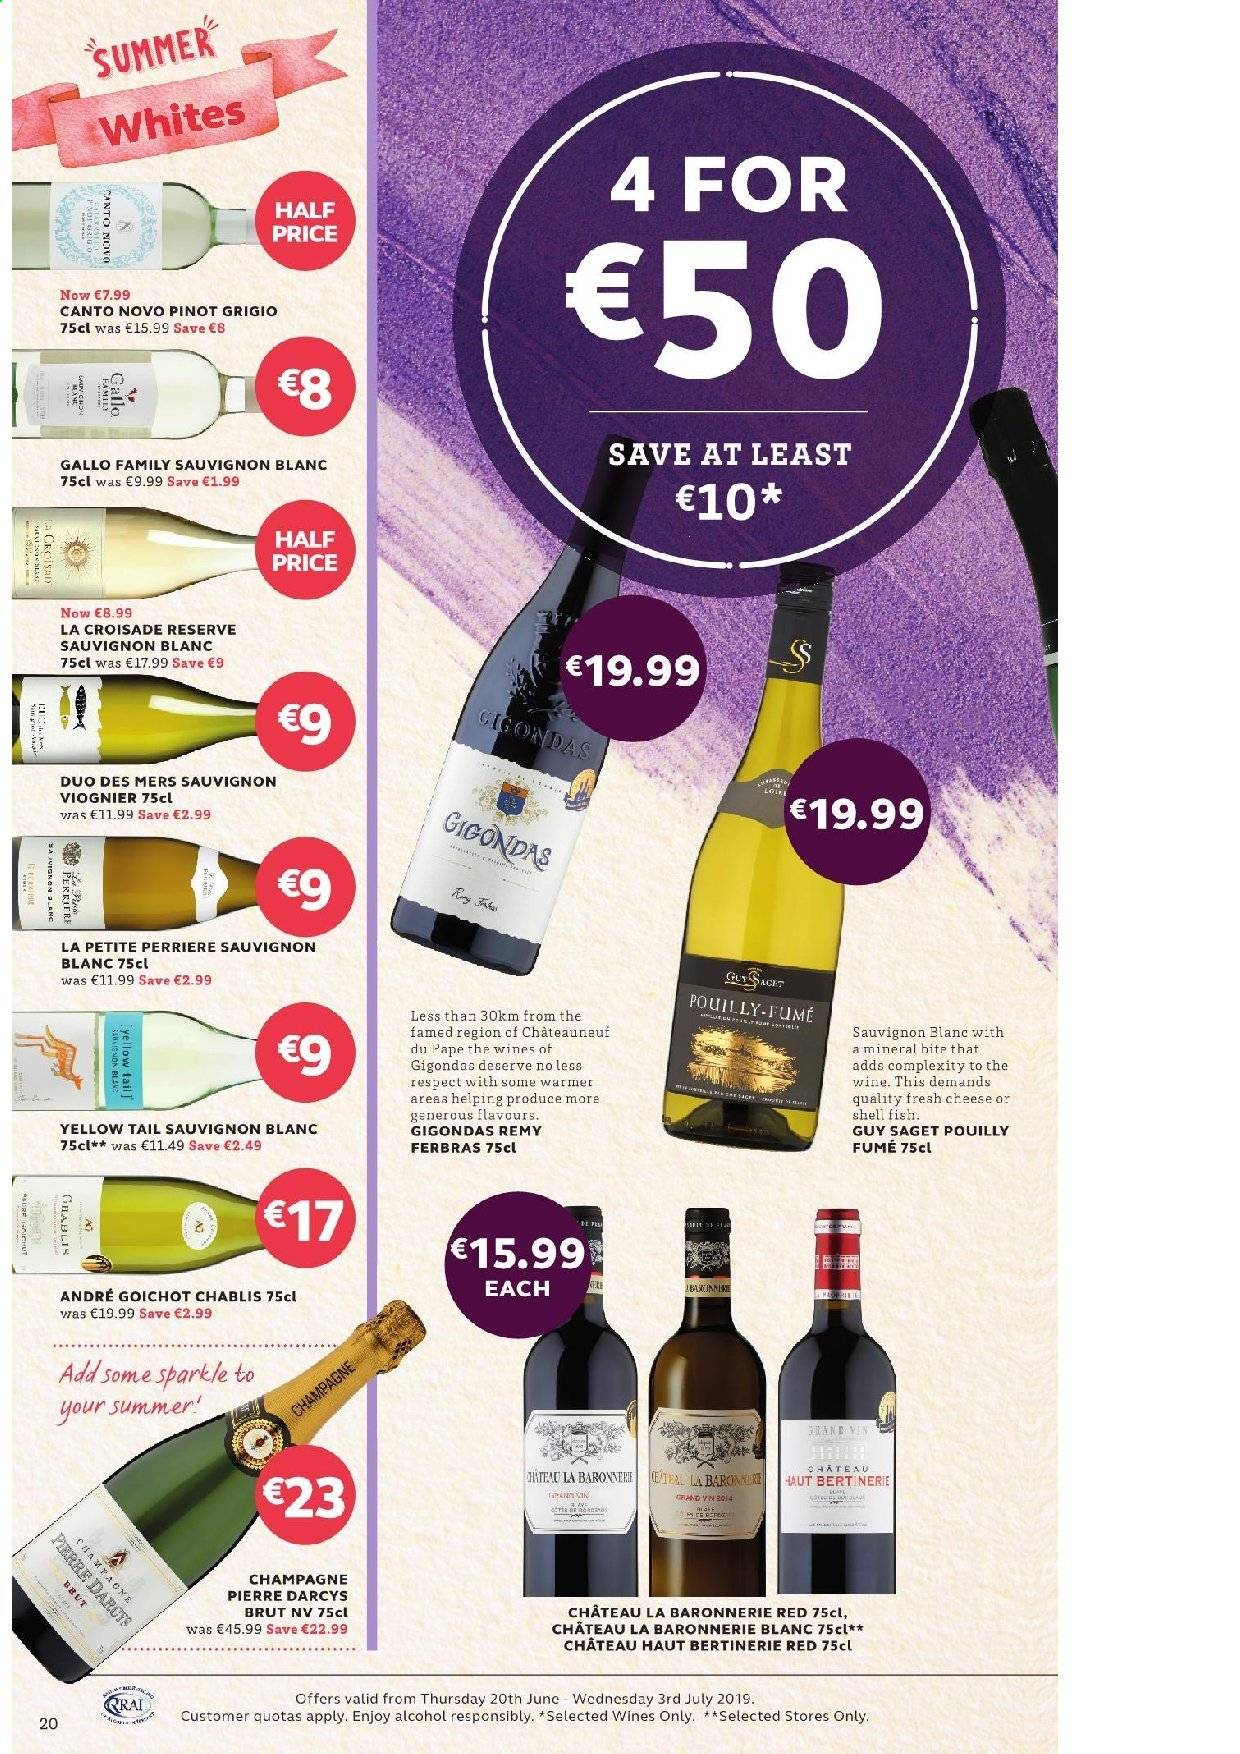 SuperValu offer  - 20.6.2019 - 3.7.2019 - Sales products - fish, champagne, wine, Gallo Family, alcohol, Pinot Grigio, Sauvignon Blanc, E45, Brut. Page 20.